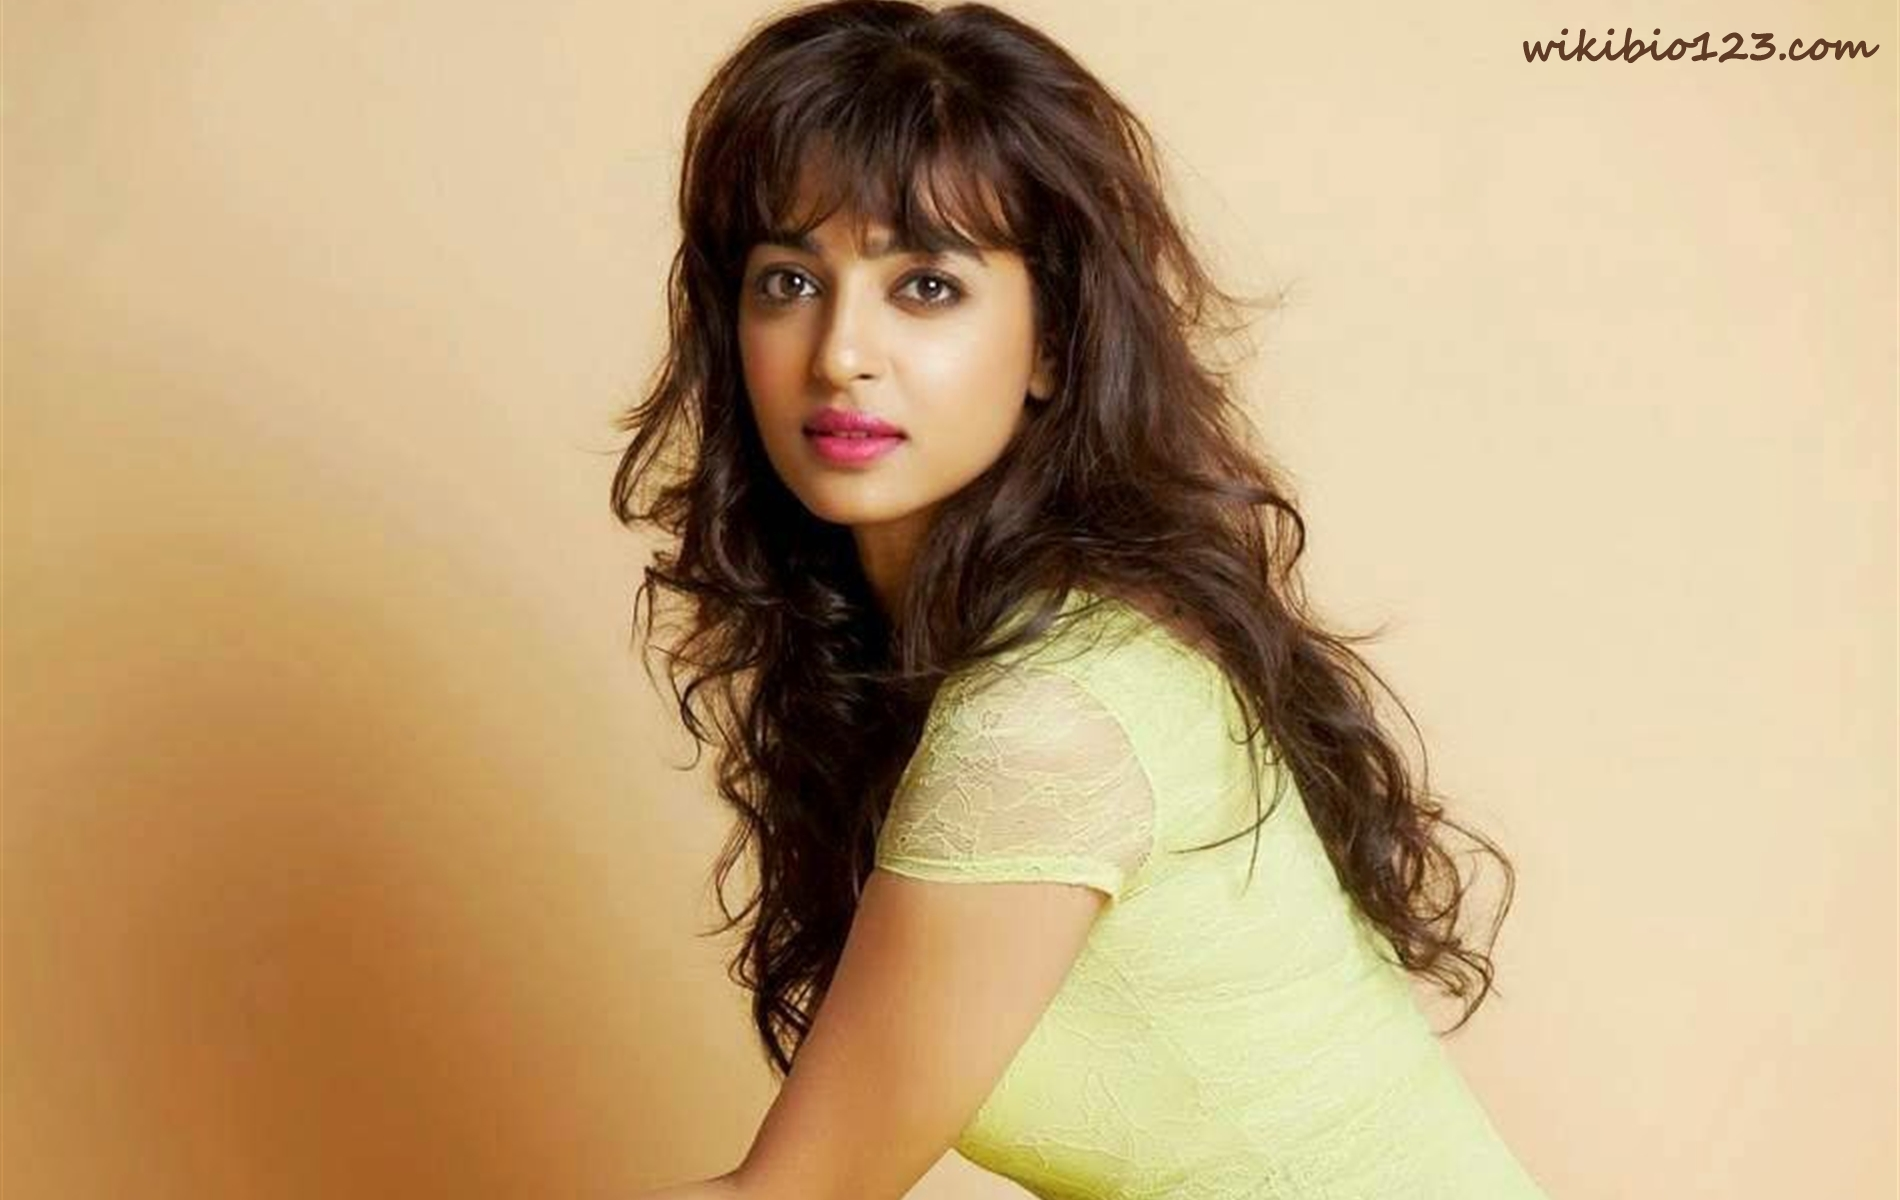 Radhika Apte wiki Bio Age Figure size Height HD Images Wallpapers Download